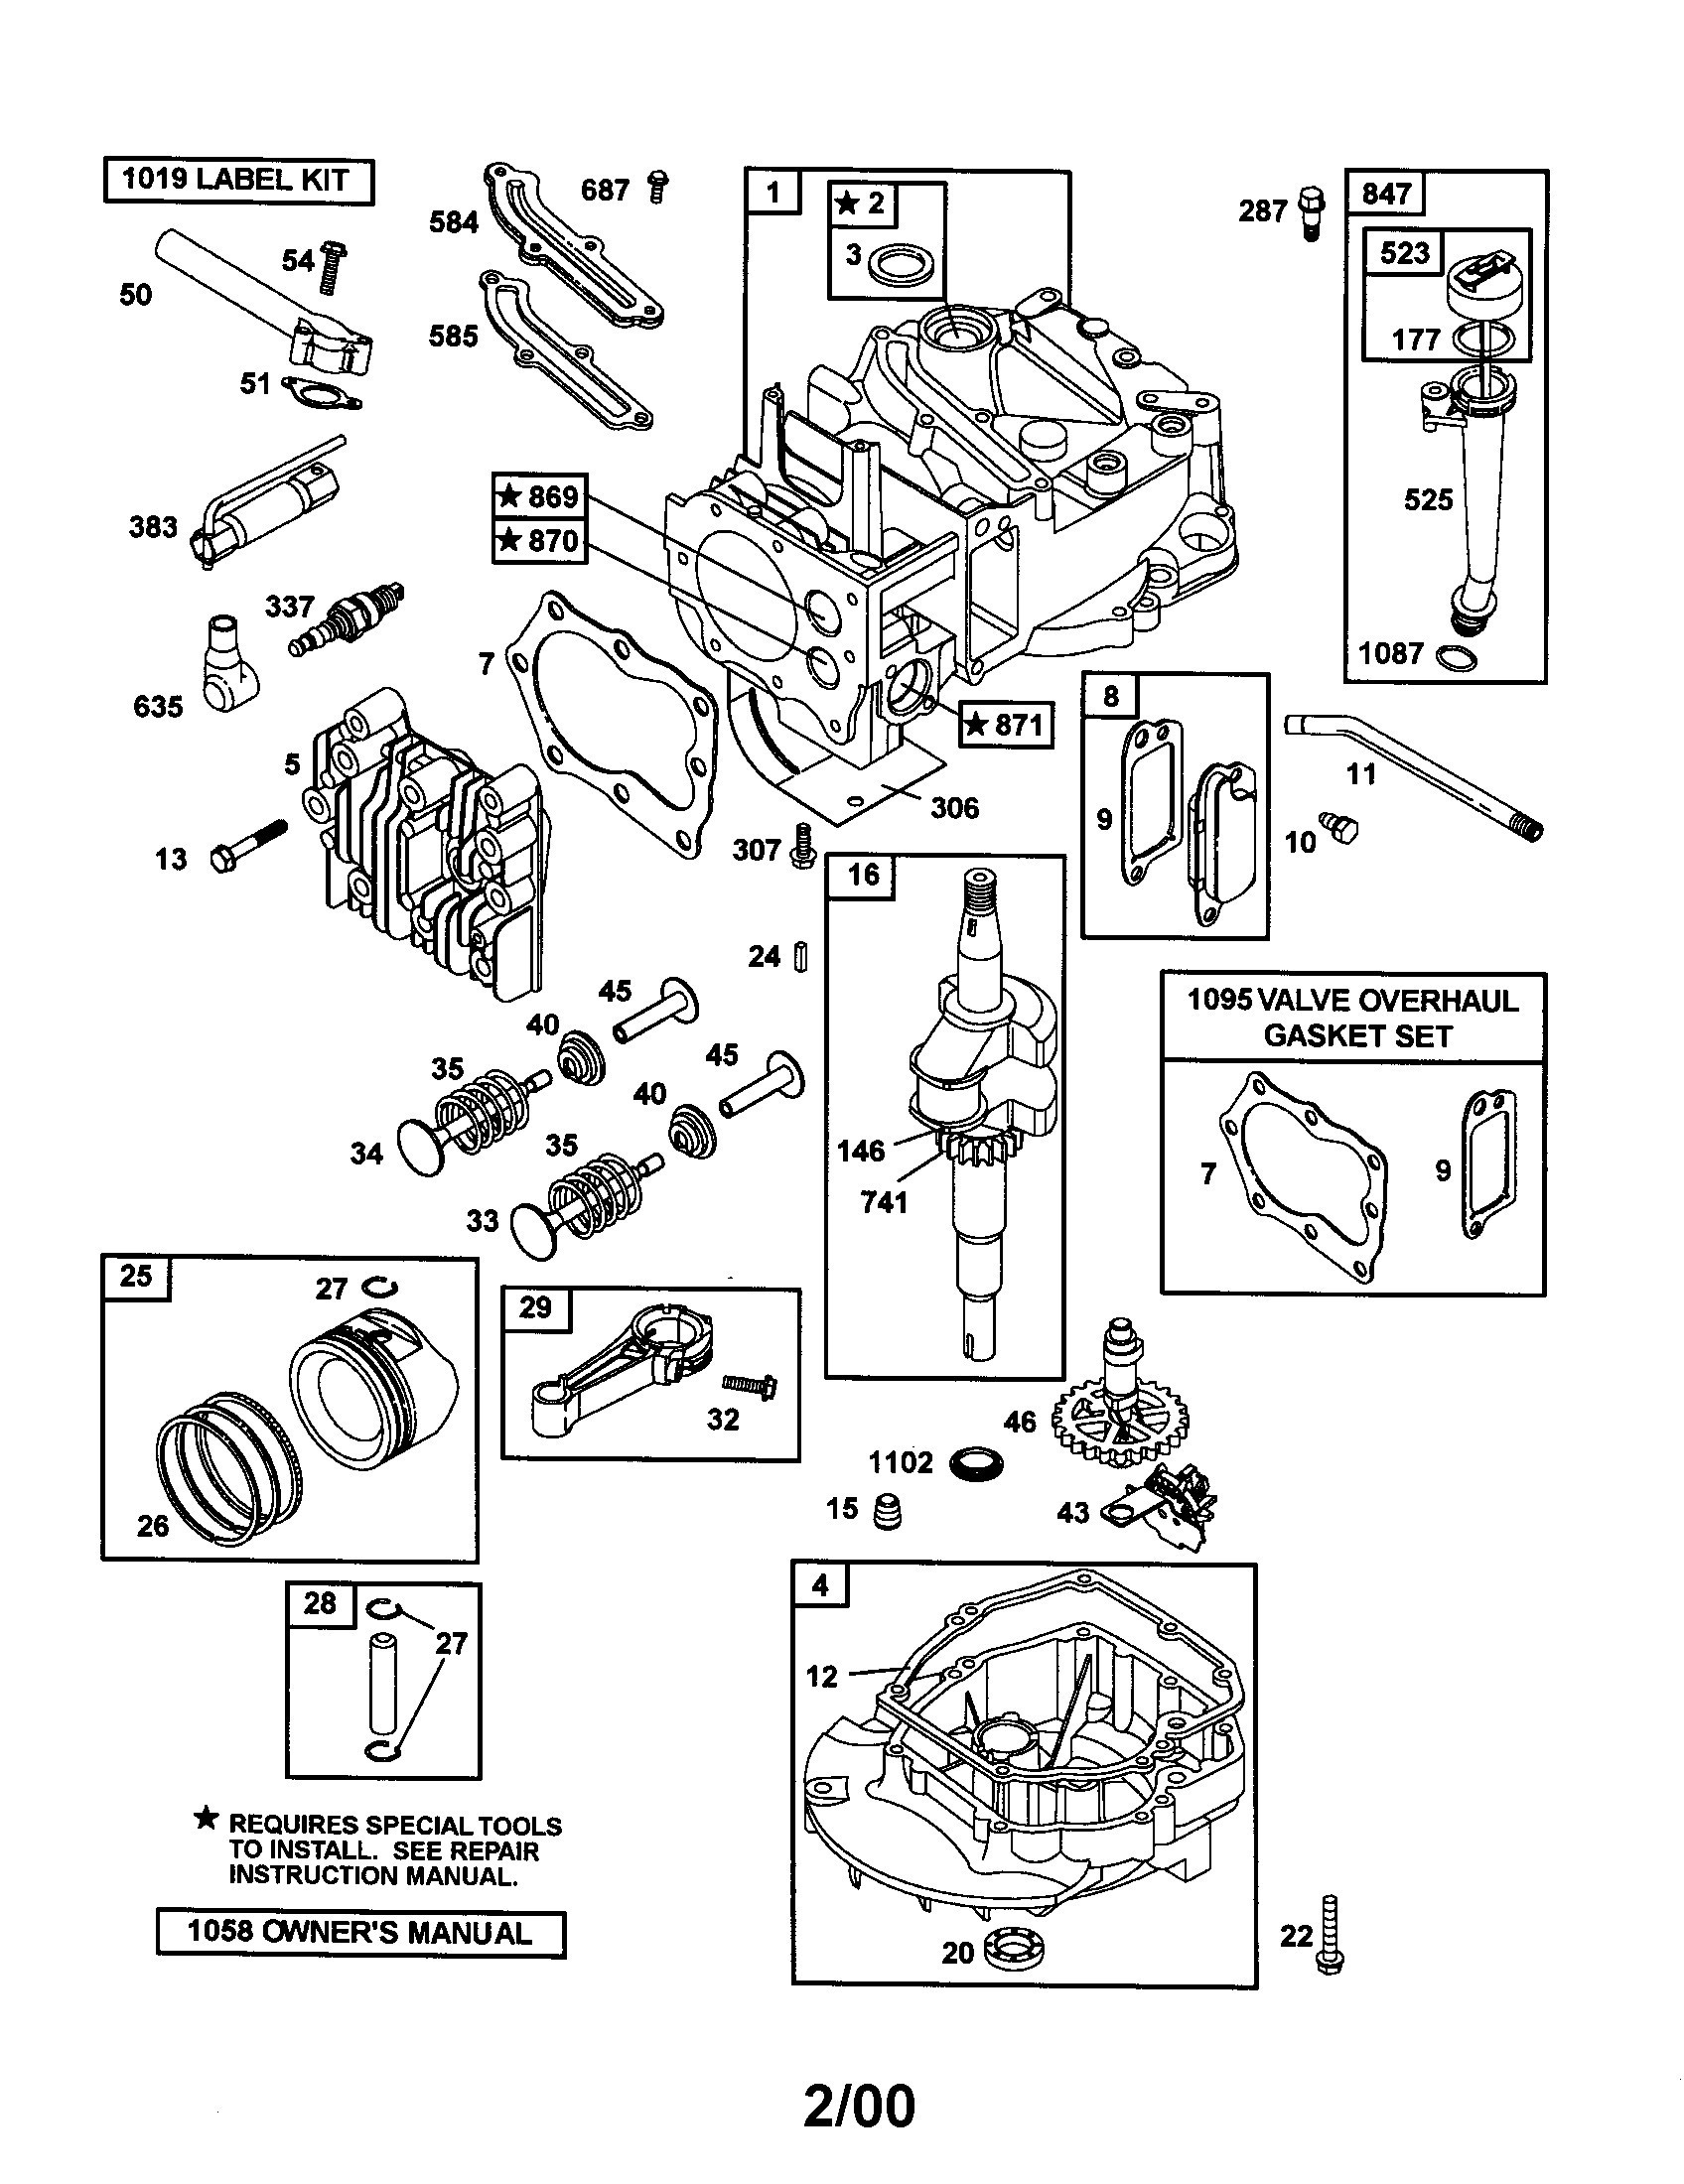 Honda Small Engine Carburetor Diagram Carb Briggs and Stratton 16 Hp Wiring Diagram Wiring Wiring Of Honda Small Engine Carburetor Diagram Honda Gcv160 Carburetor Diagram – 917 Craftsman 17 Hp 42 Inch Mower